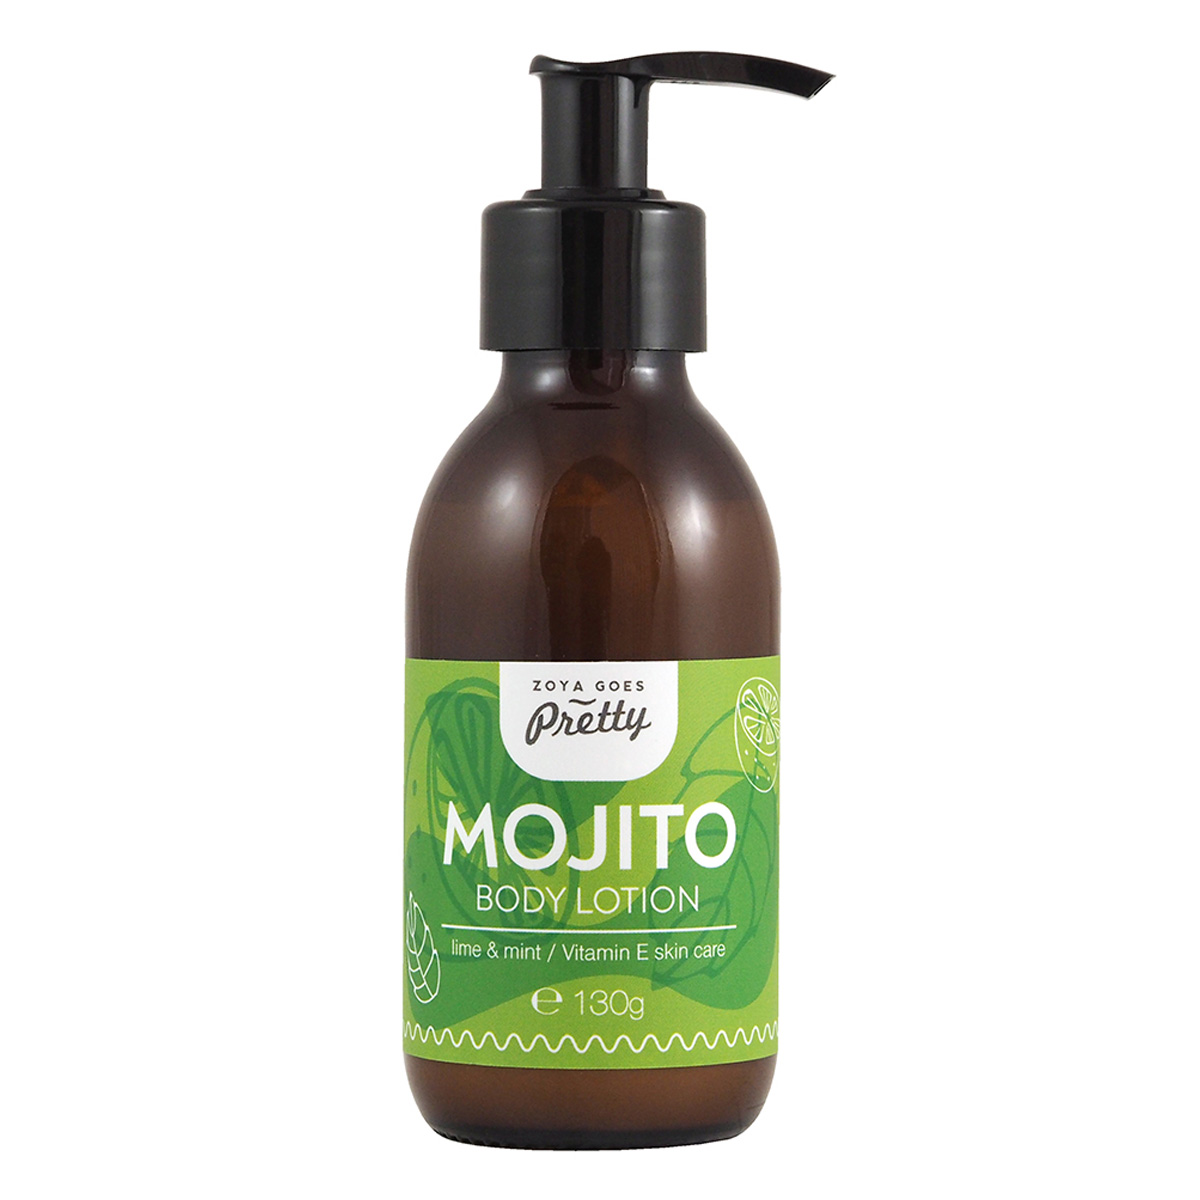 zoyagoespretty-mojito-body-lotion-130